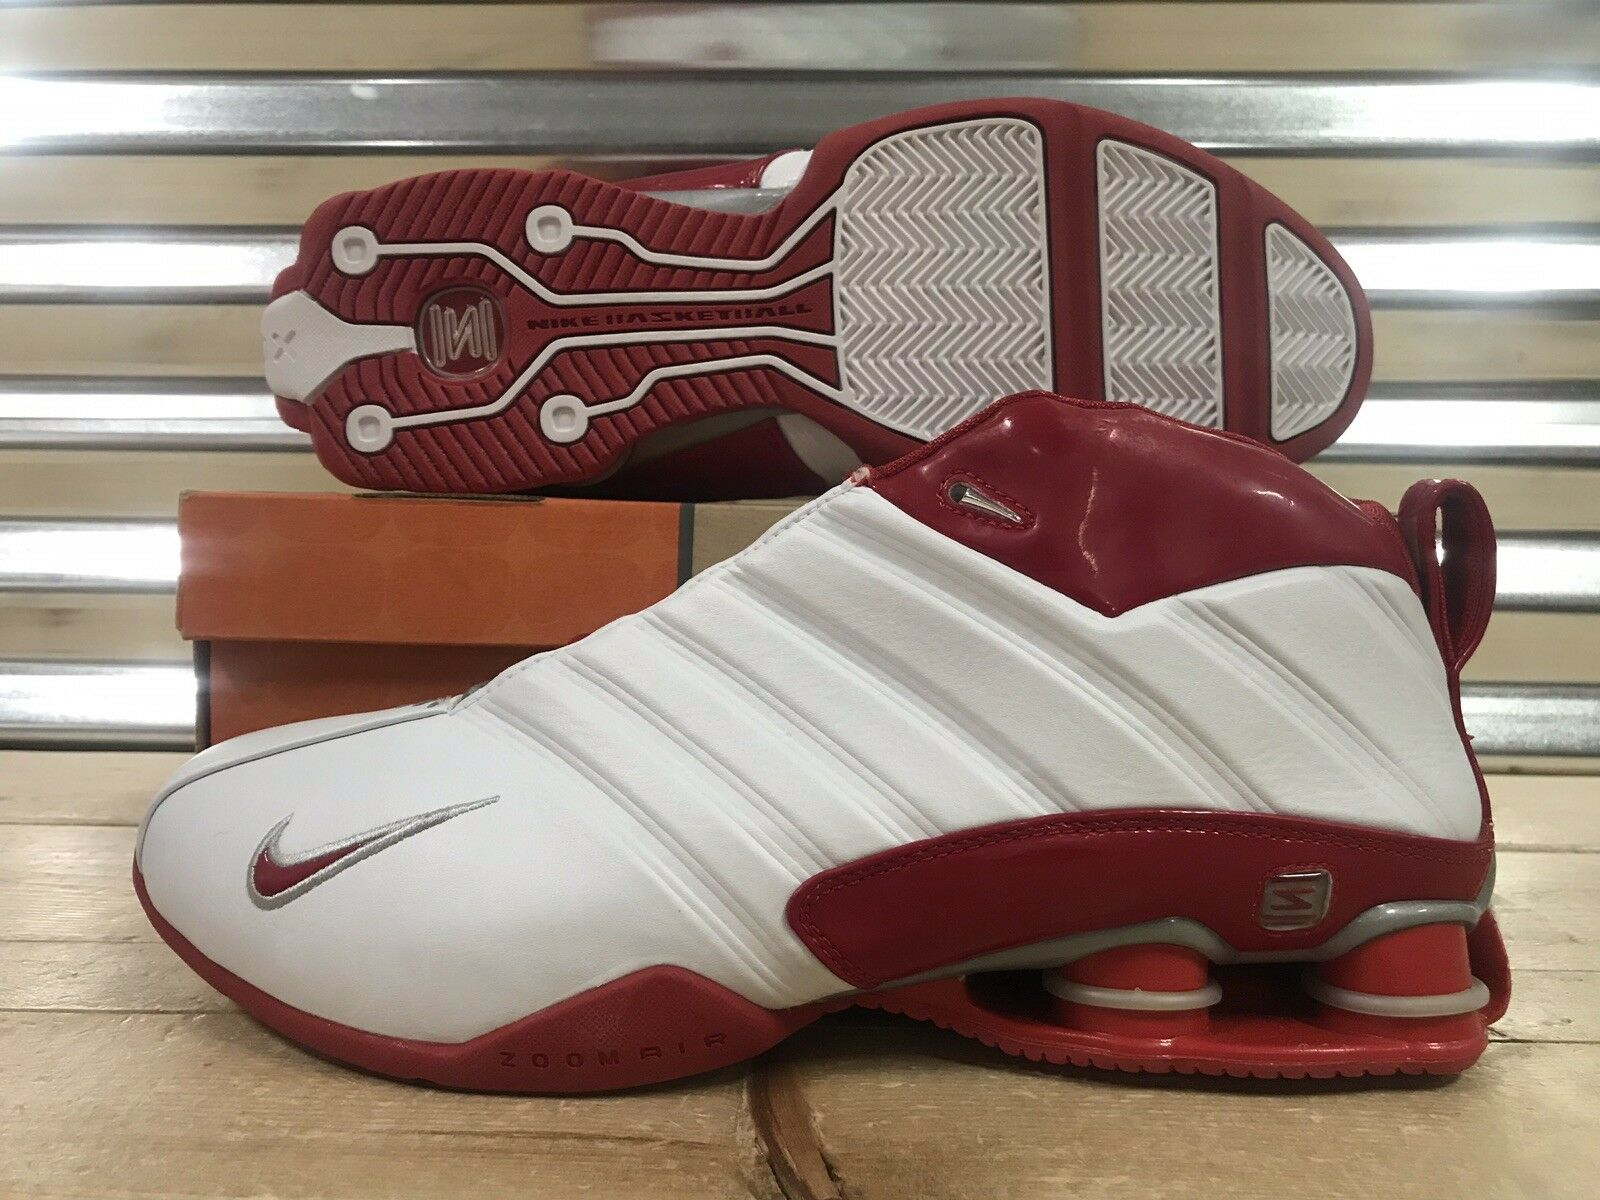 Nike Shox Supremacy PR 2003 shoes Vince White Varsity Red SZ 12 ( 305963-161 )